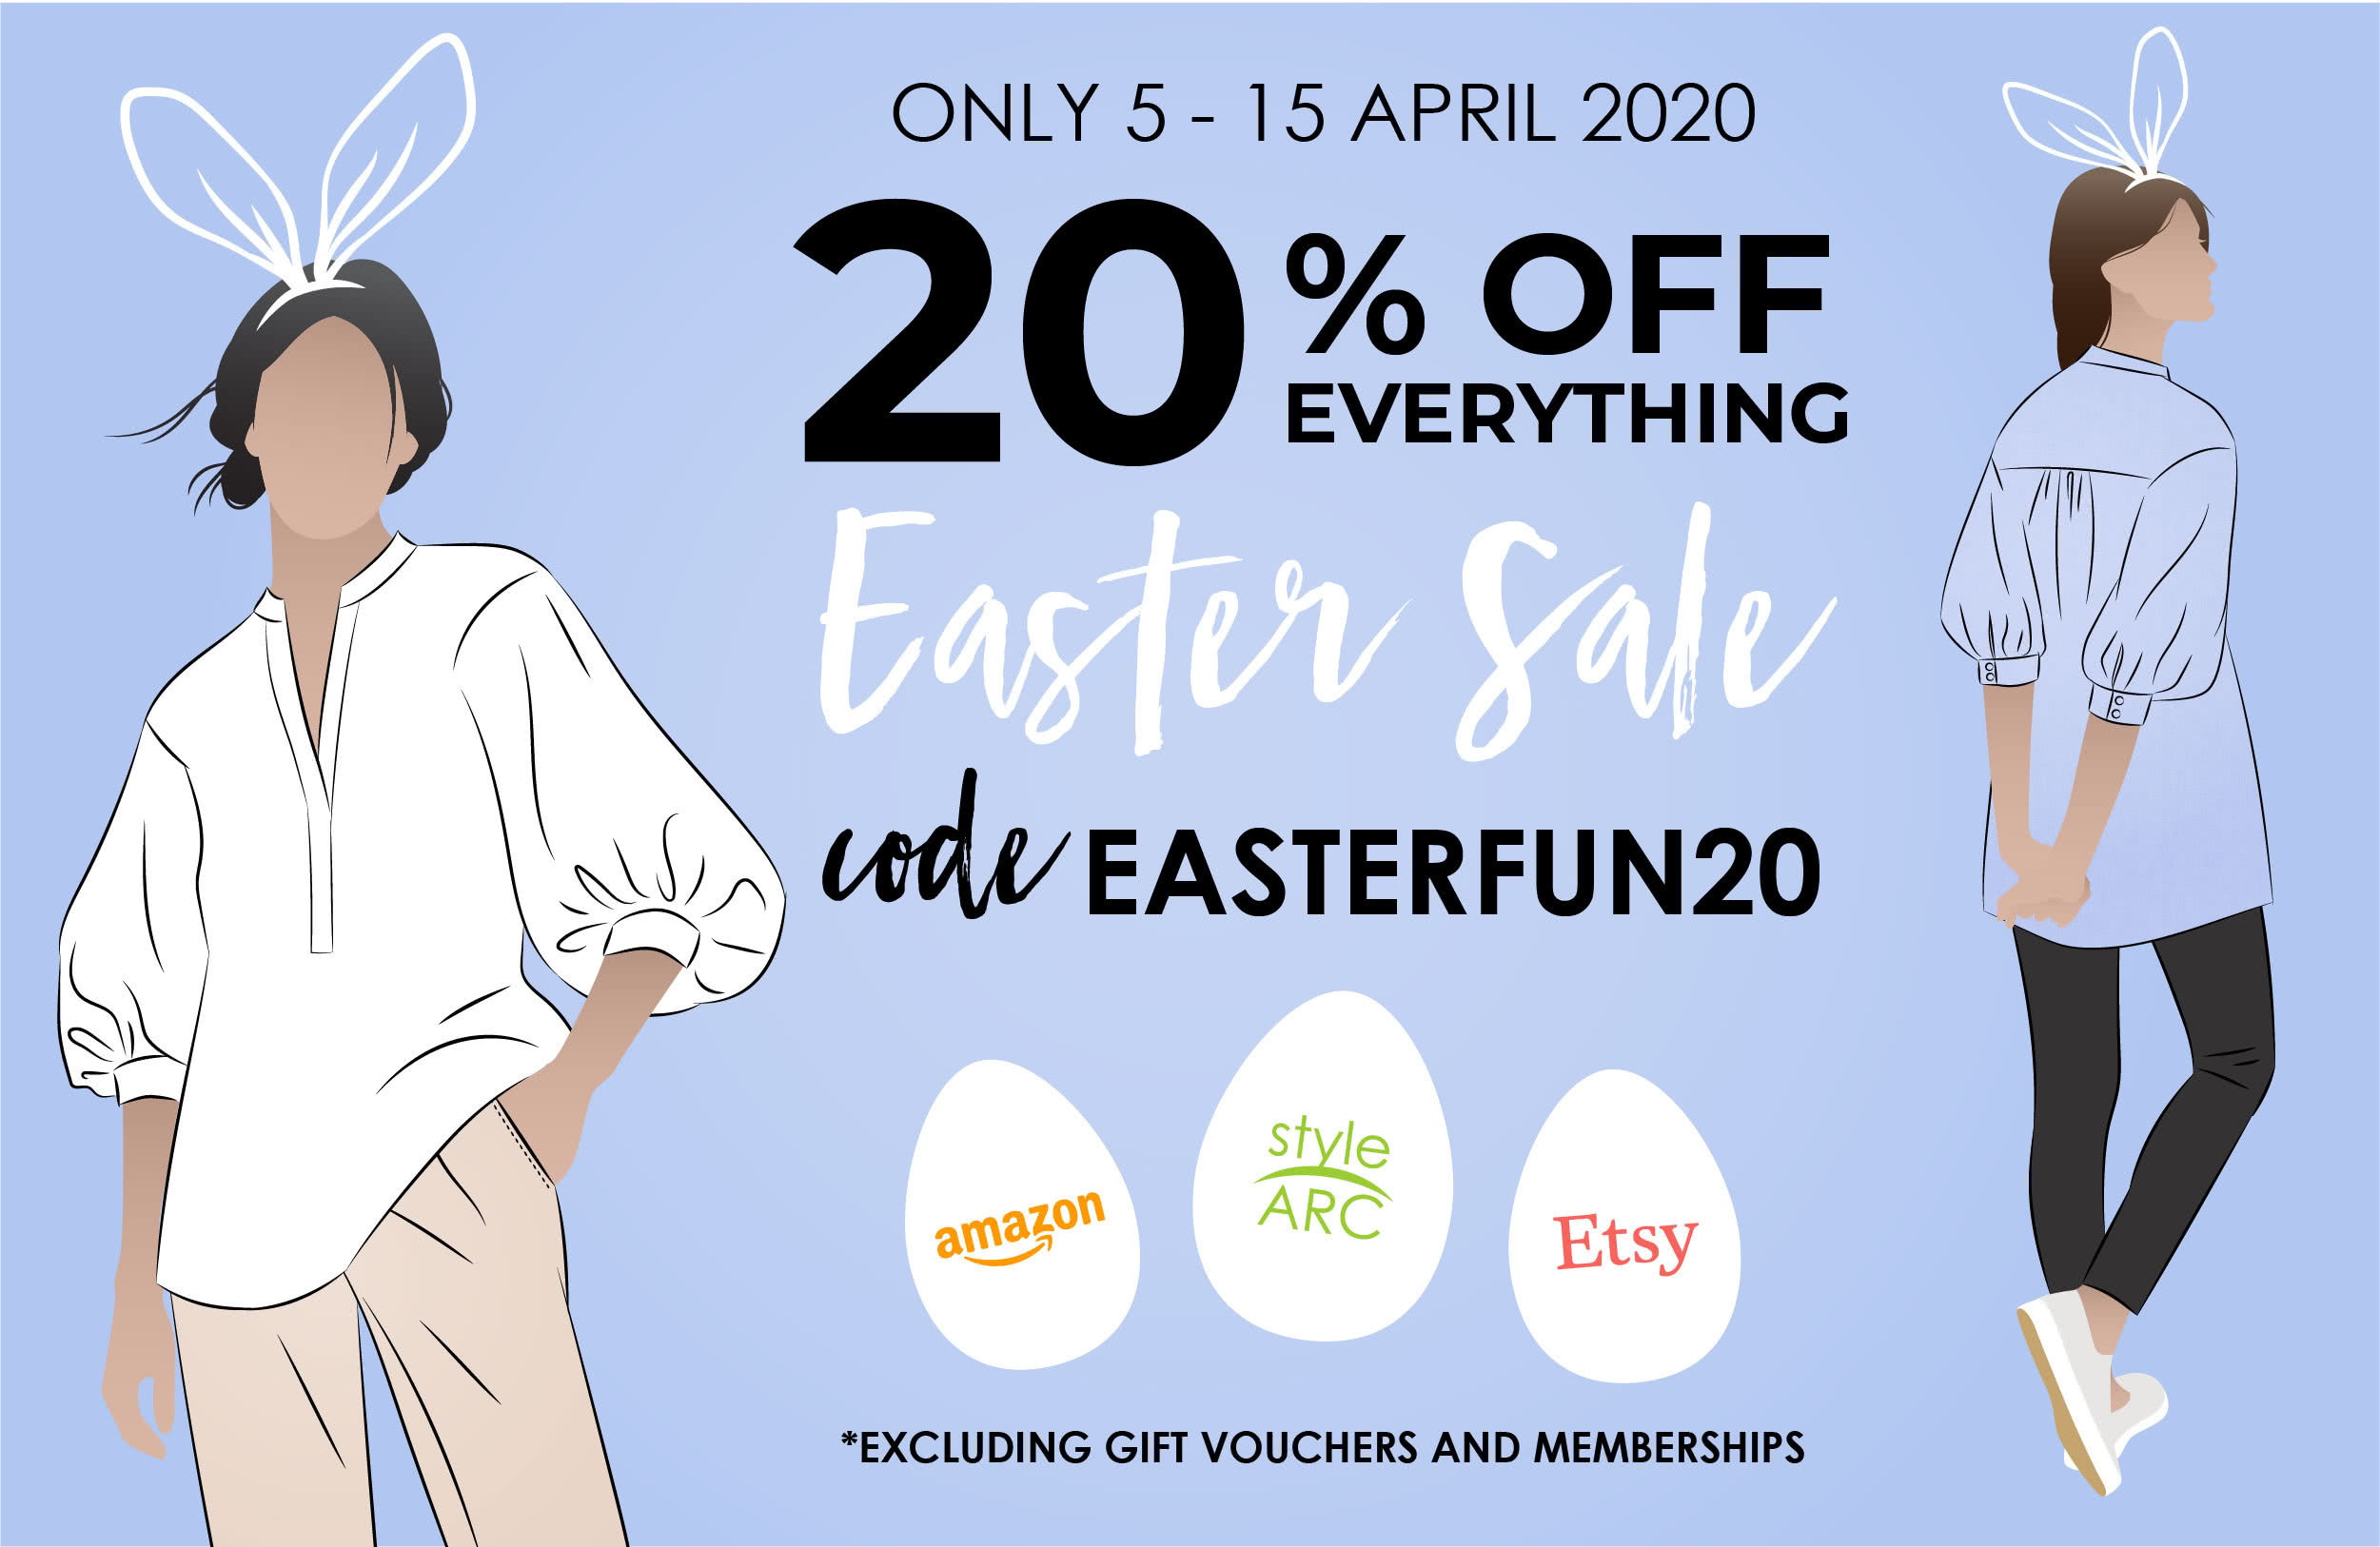 2020 Style Arc Easter Sale coupon code: EASTERFUN20